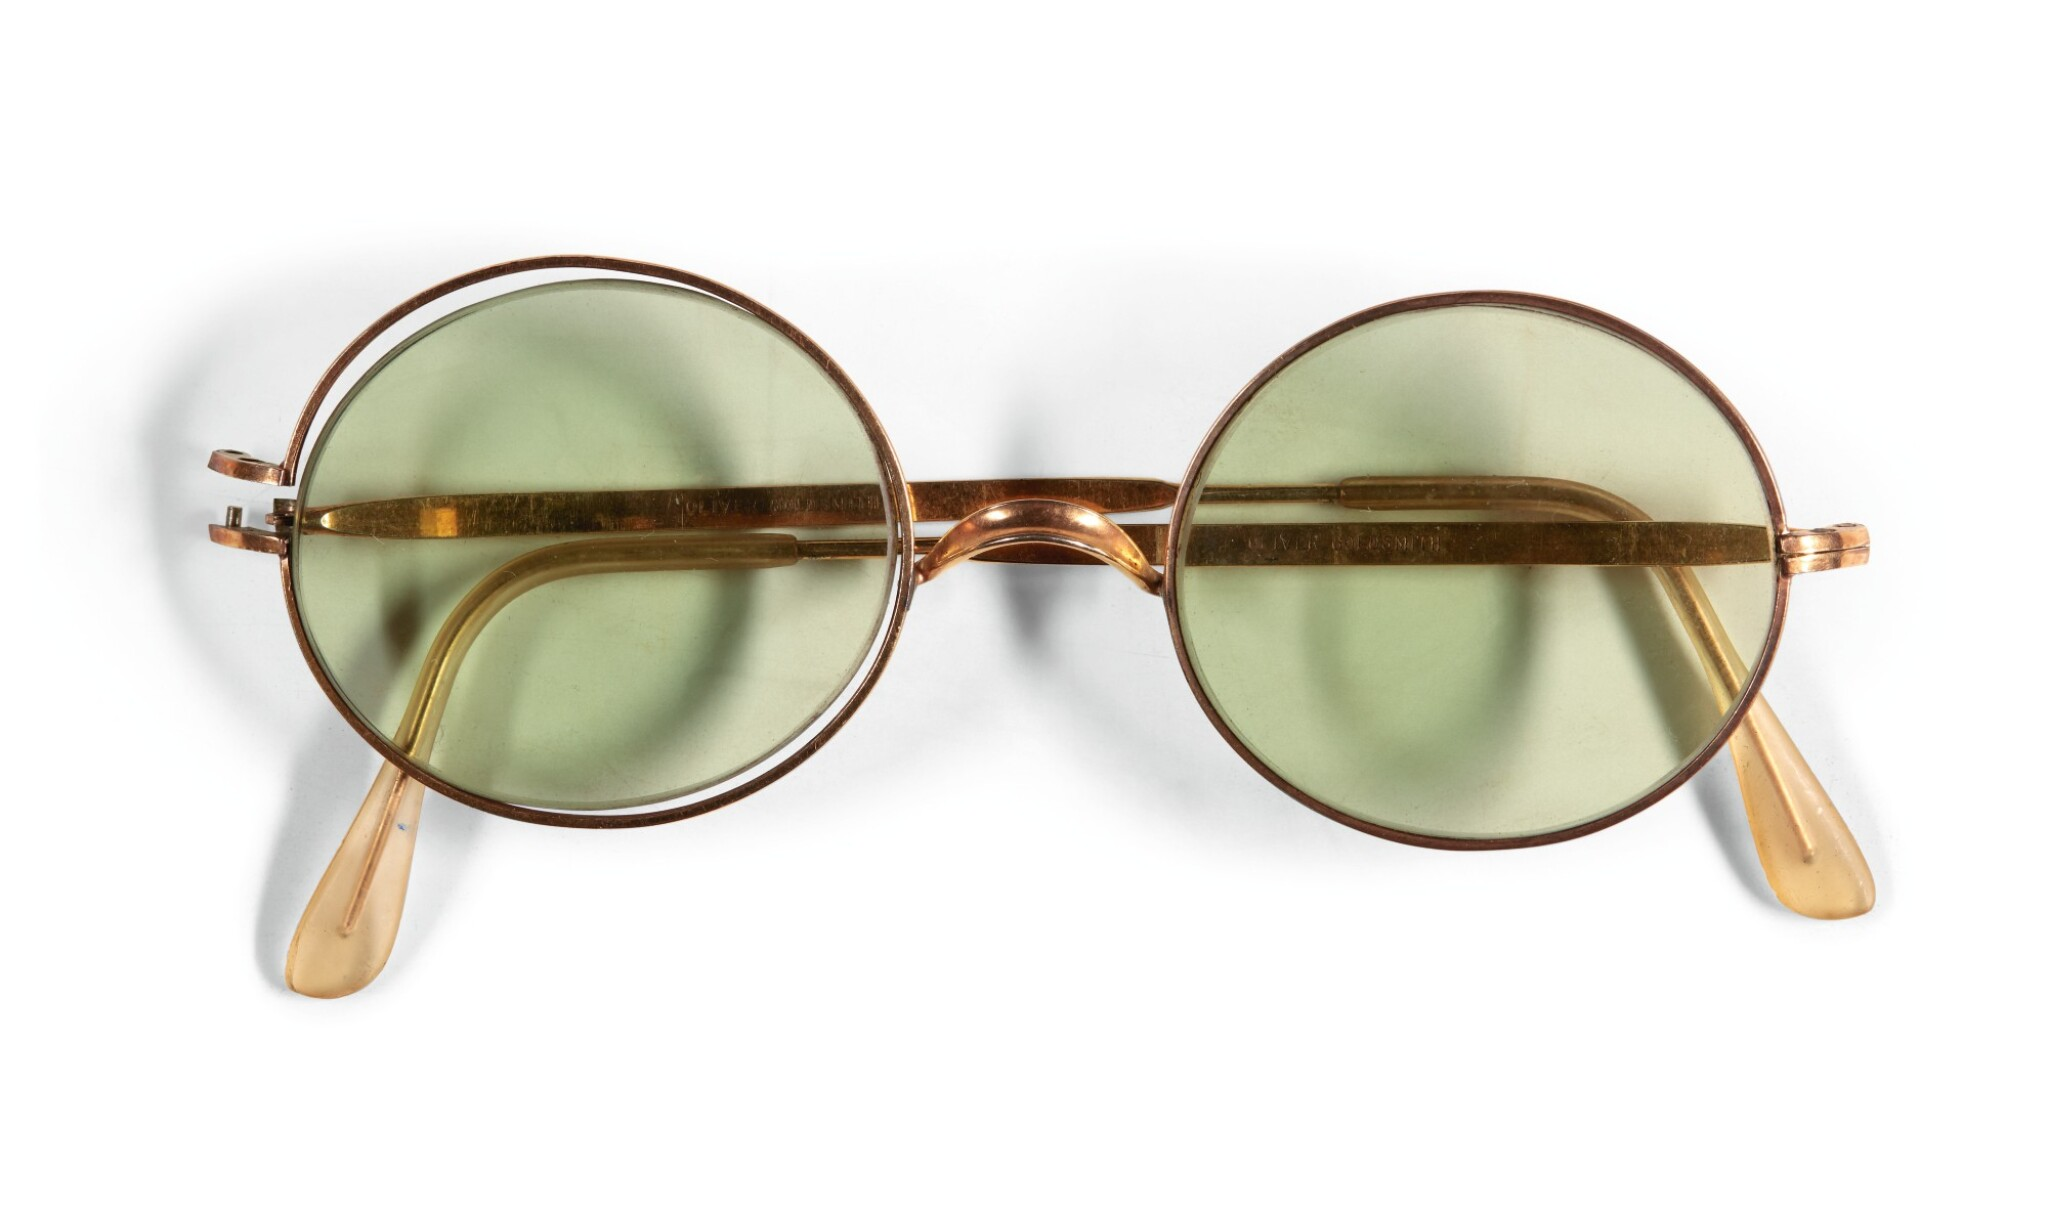 View 1 of Lot 14. JOHN LENNON | Sunglasses, c. 1968.